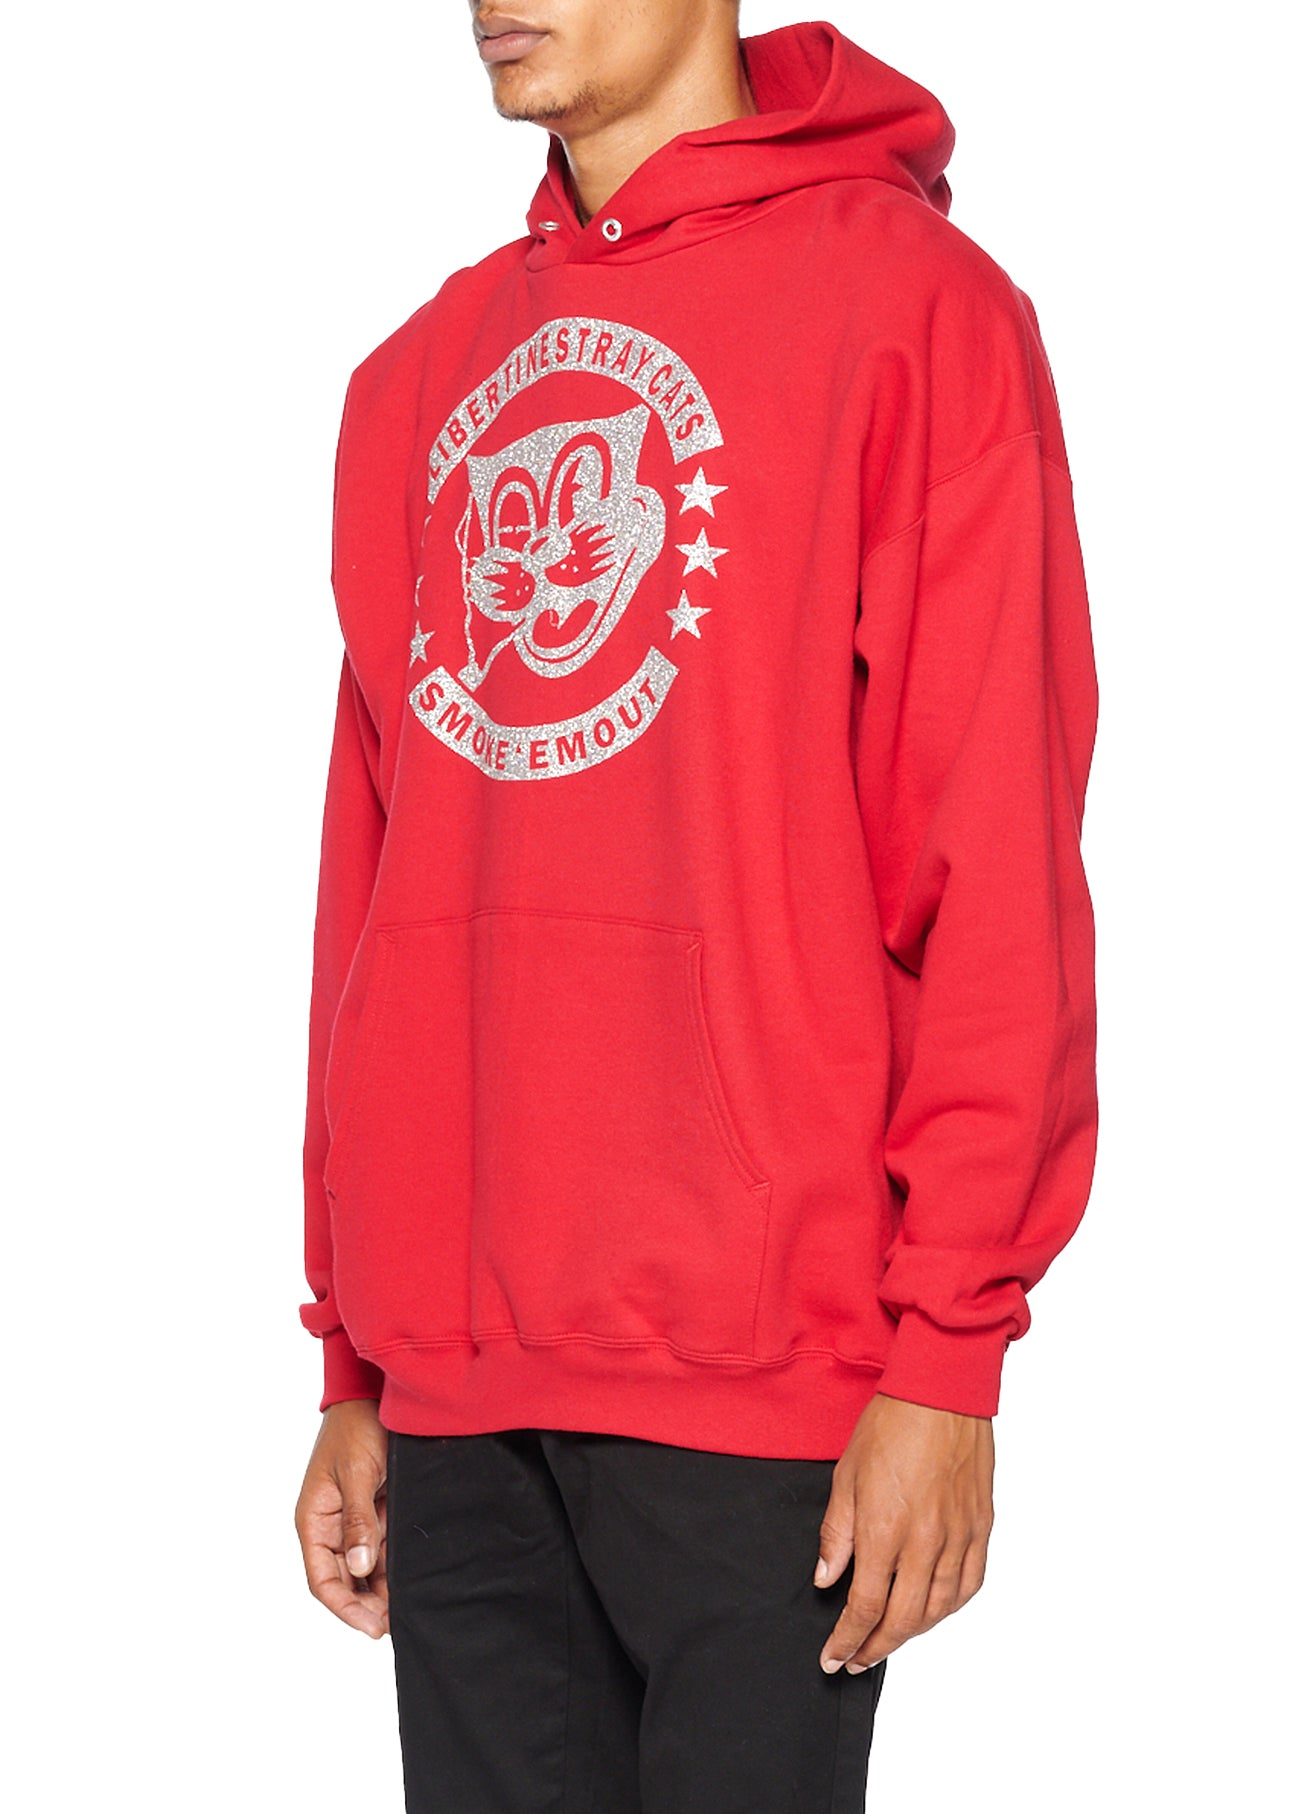 'STRAY CATS' HOODIE PULLOVER SWEATSHIRT - Men's Jackets & Coats - Libertine